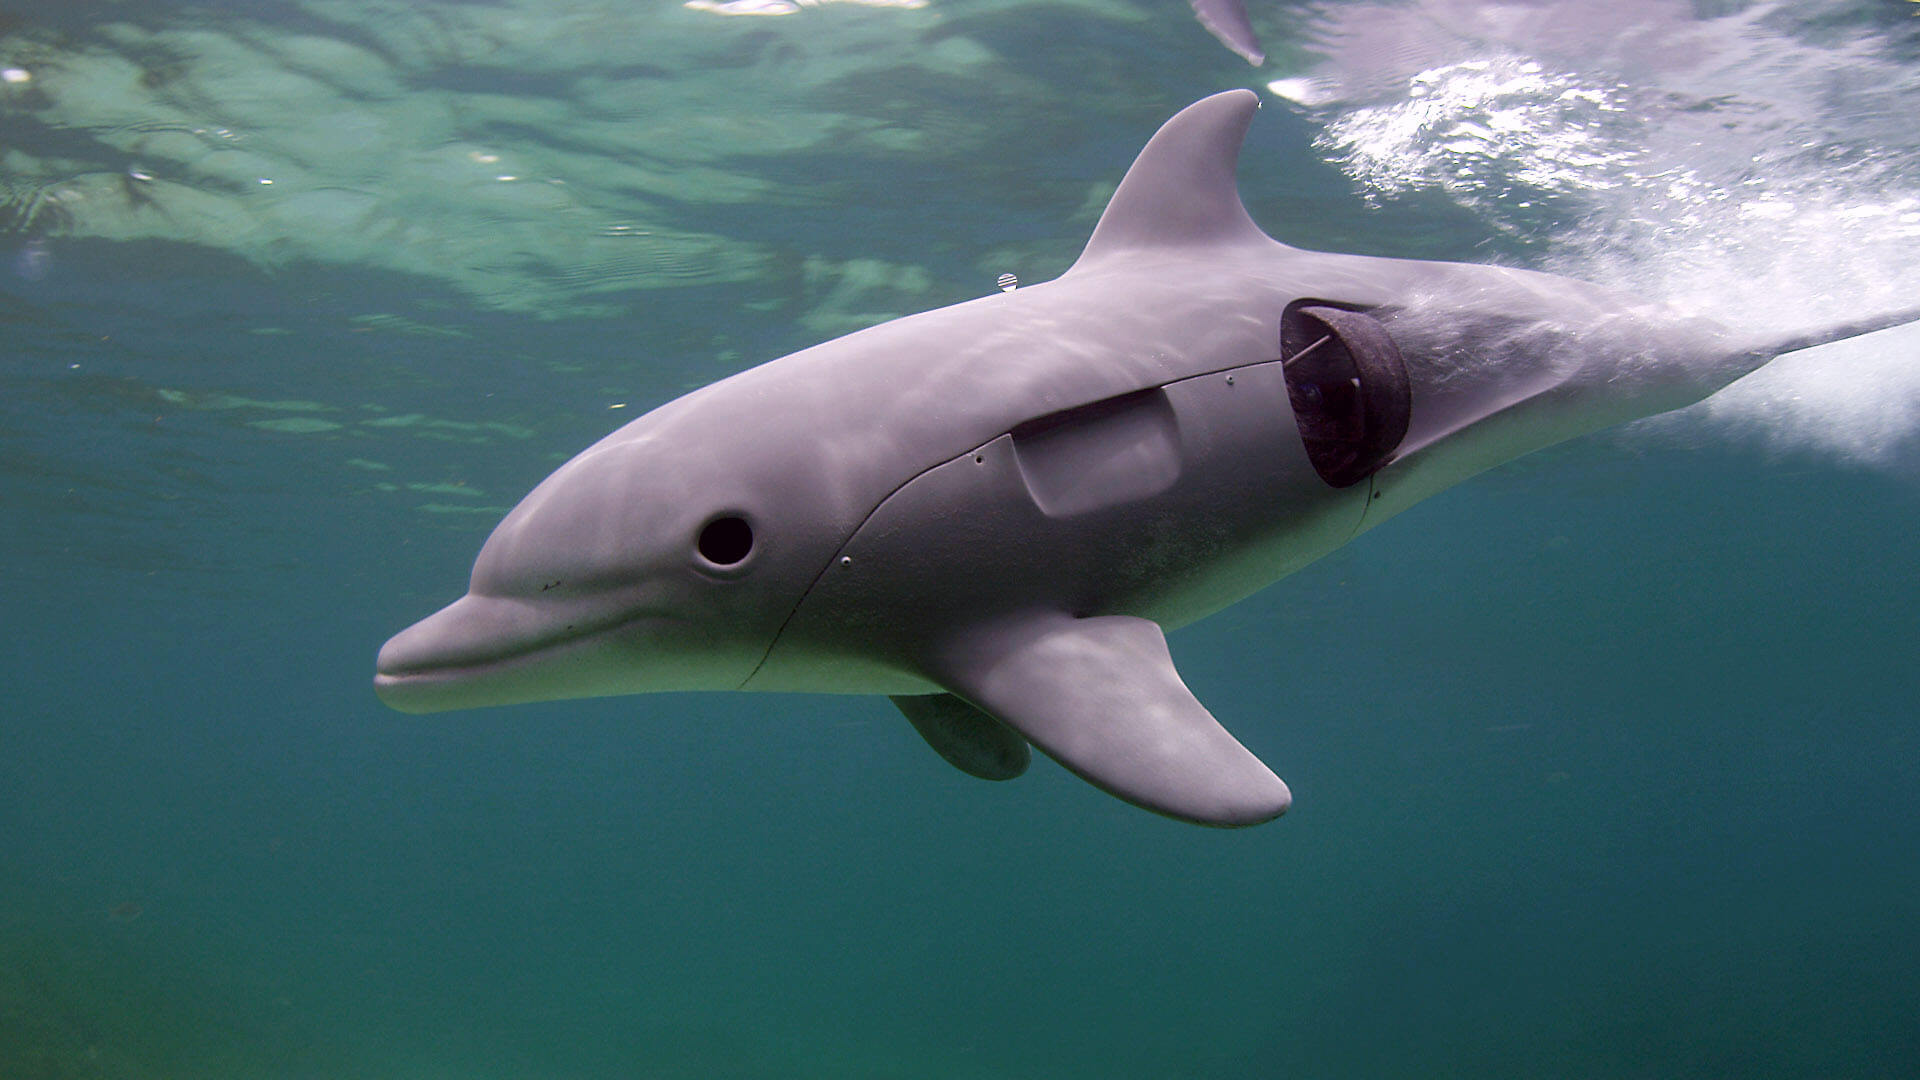 5337701-high-dolphins-spy-in-the-pod